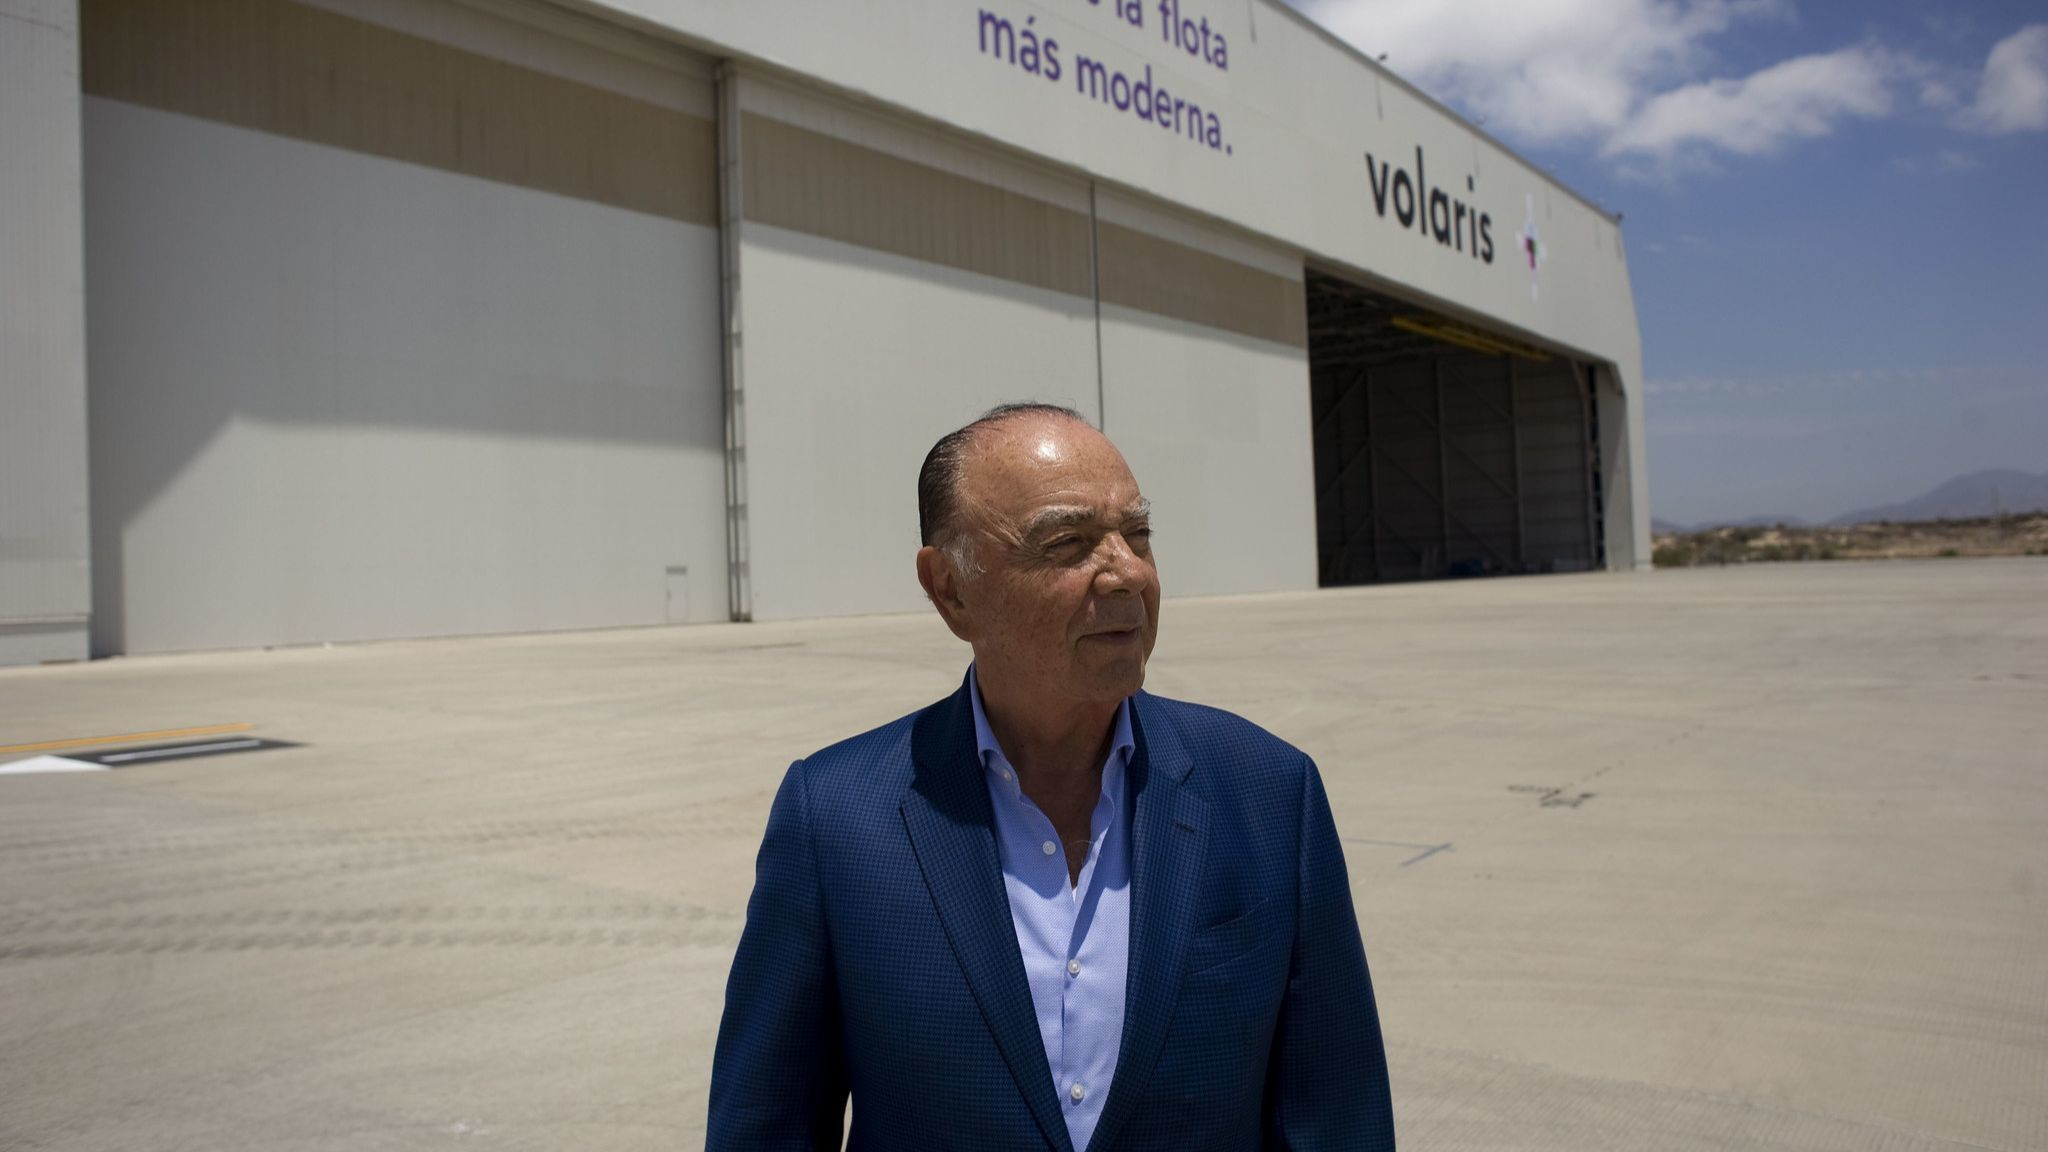 Former mayor launches bid to turn Tijuana into air cargo hub